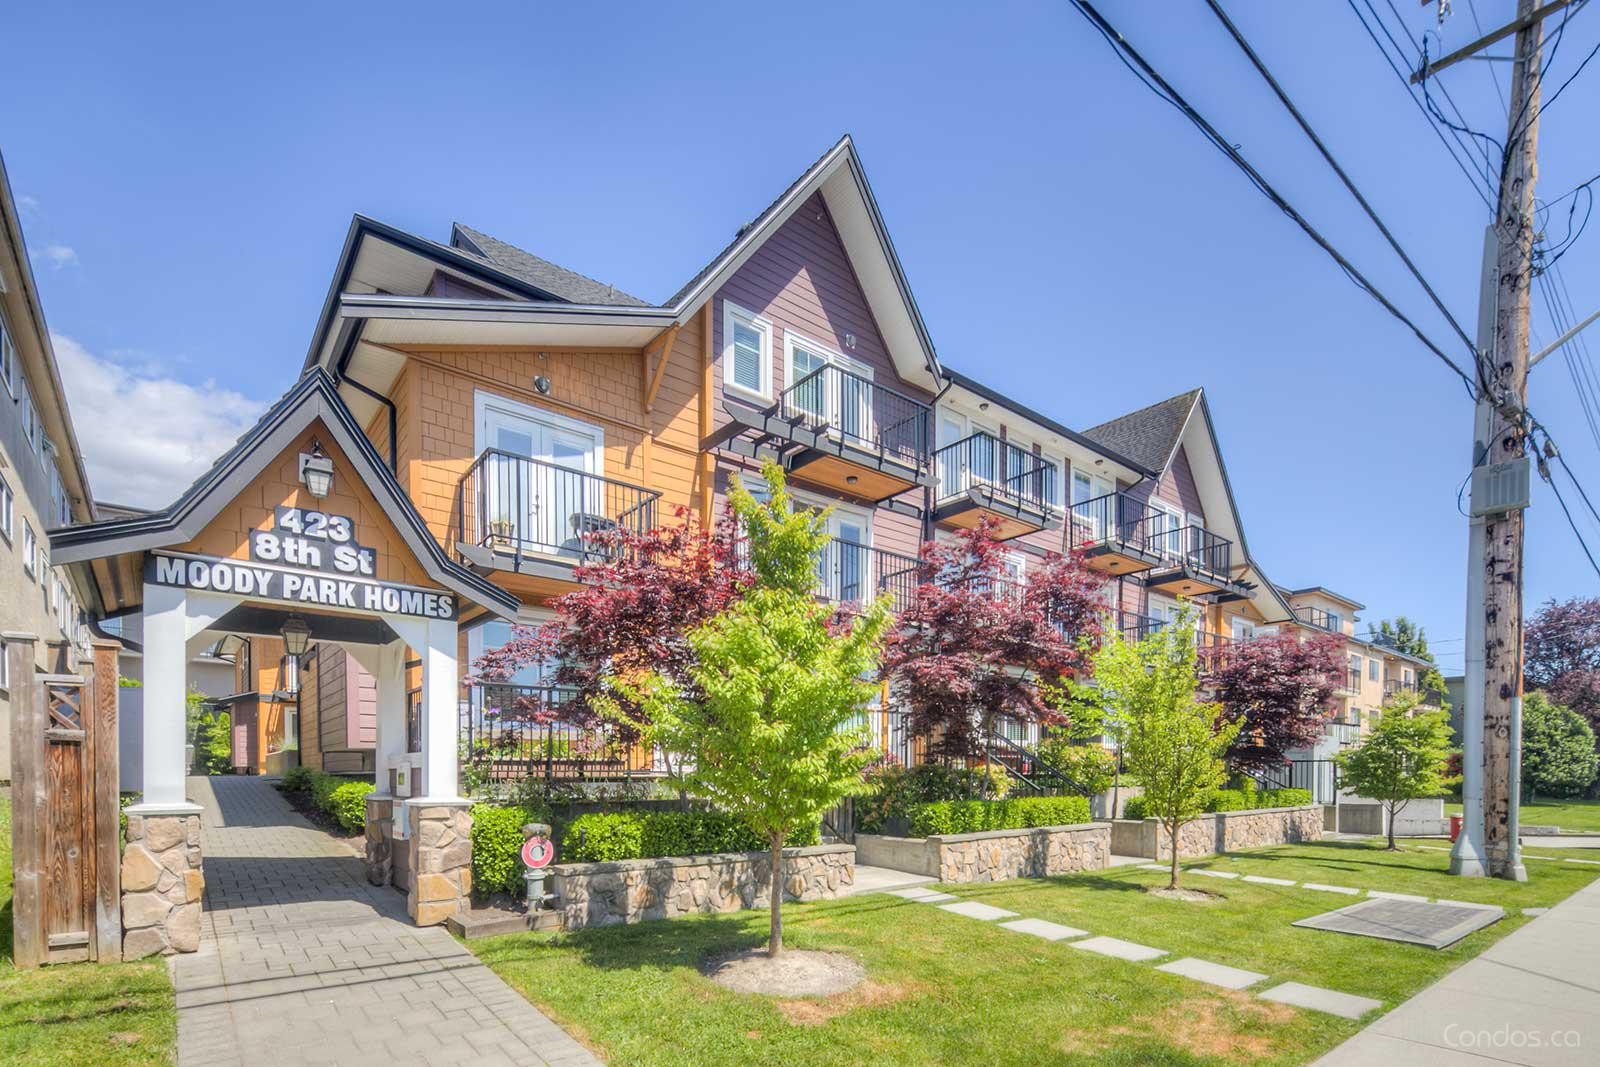 Moody Park Homes at 423 Eighth St, New Westminster 0